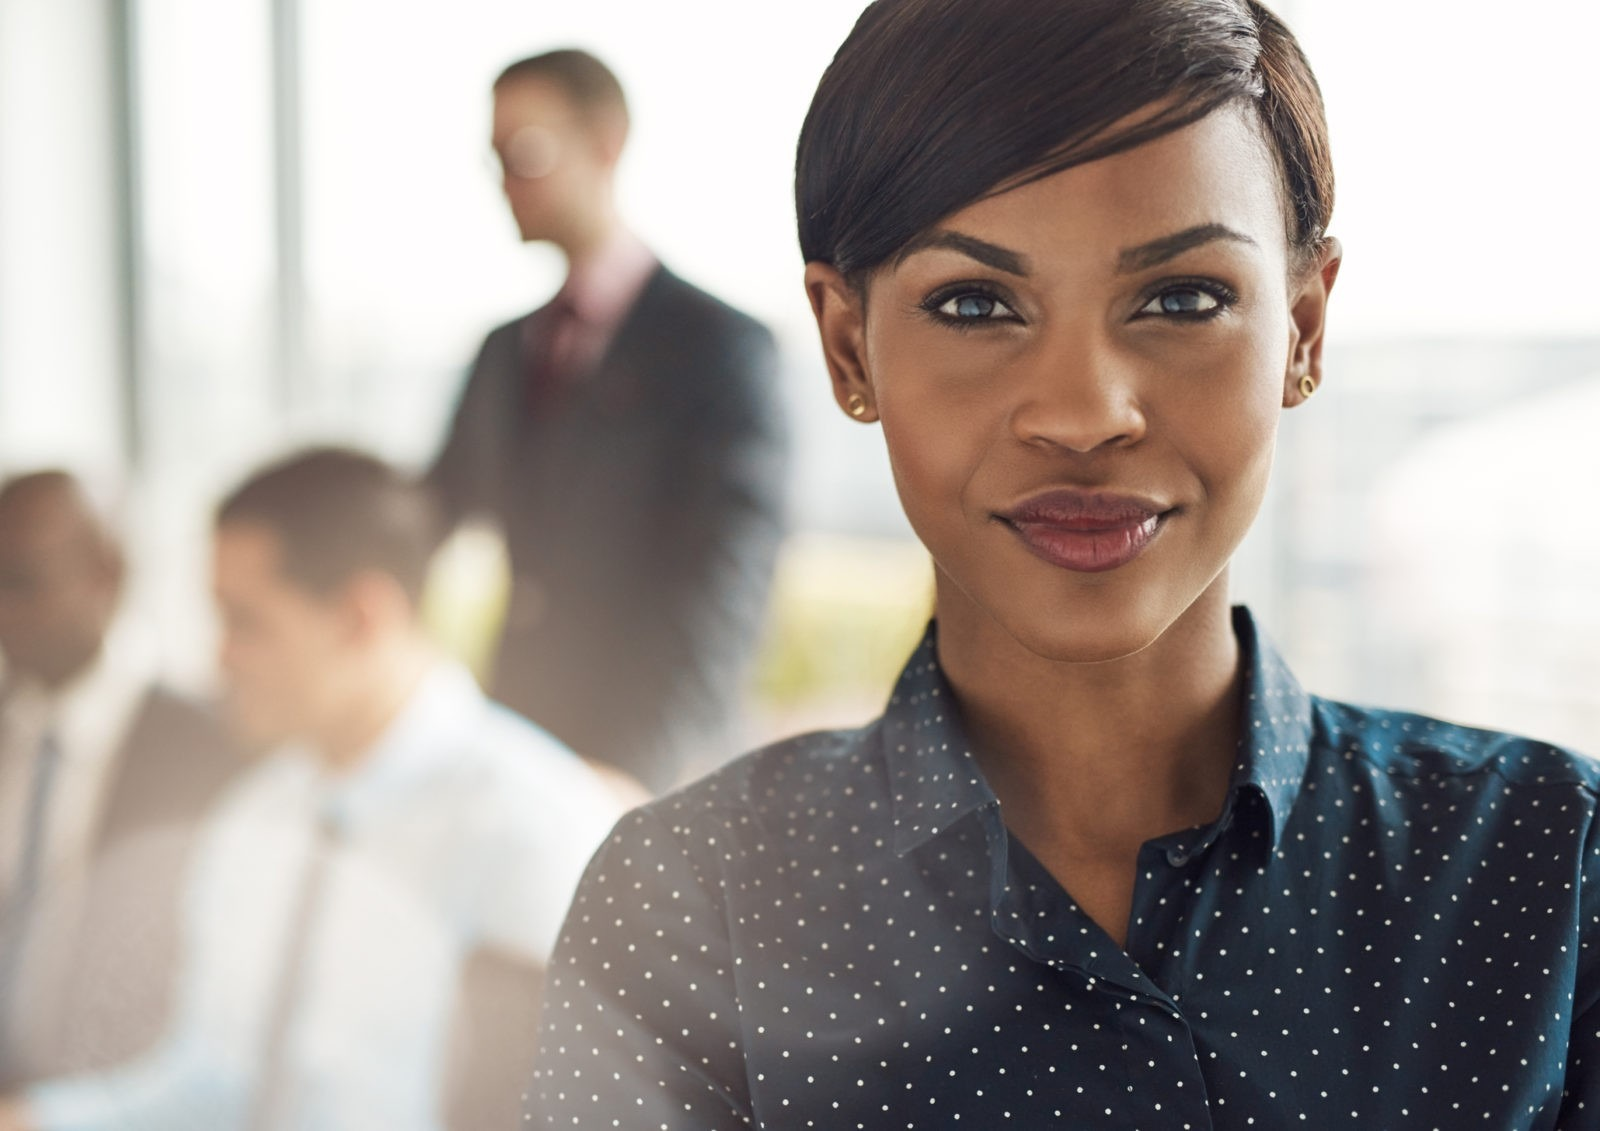 Confident business woman in office with group